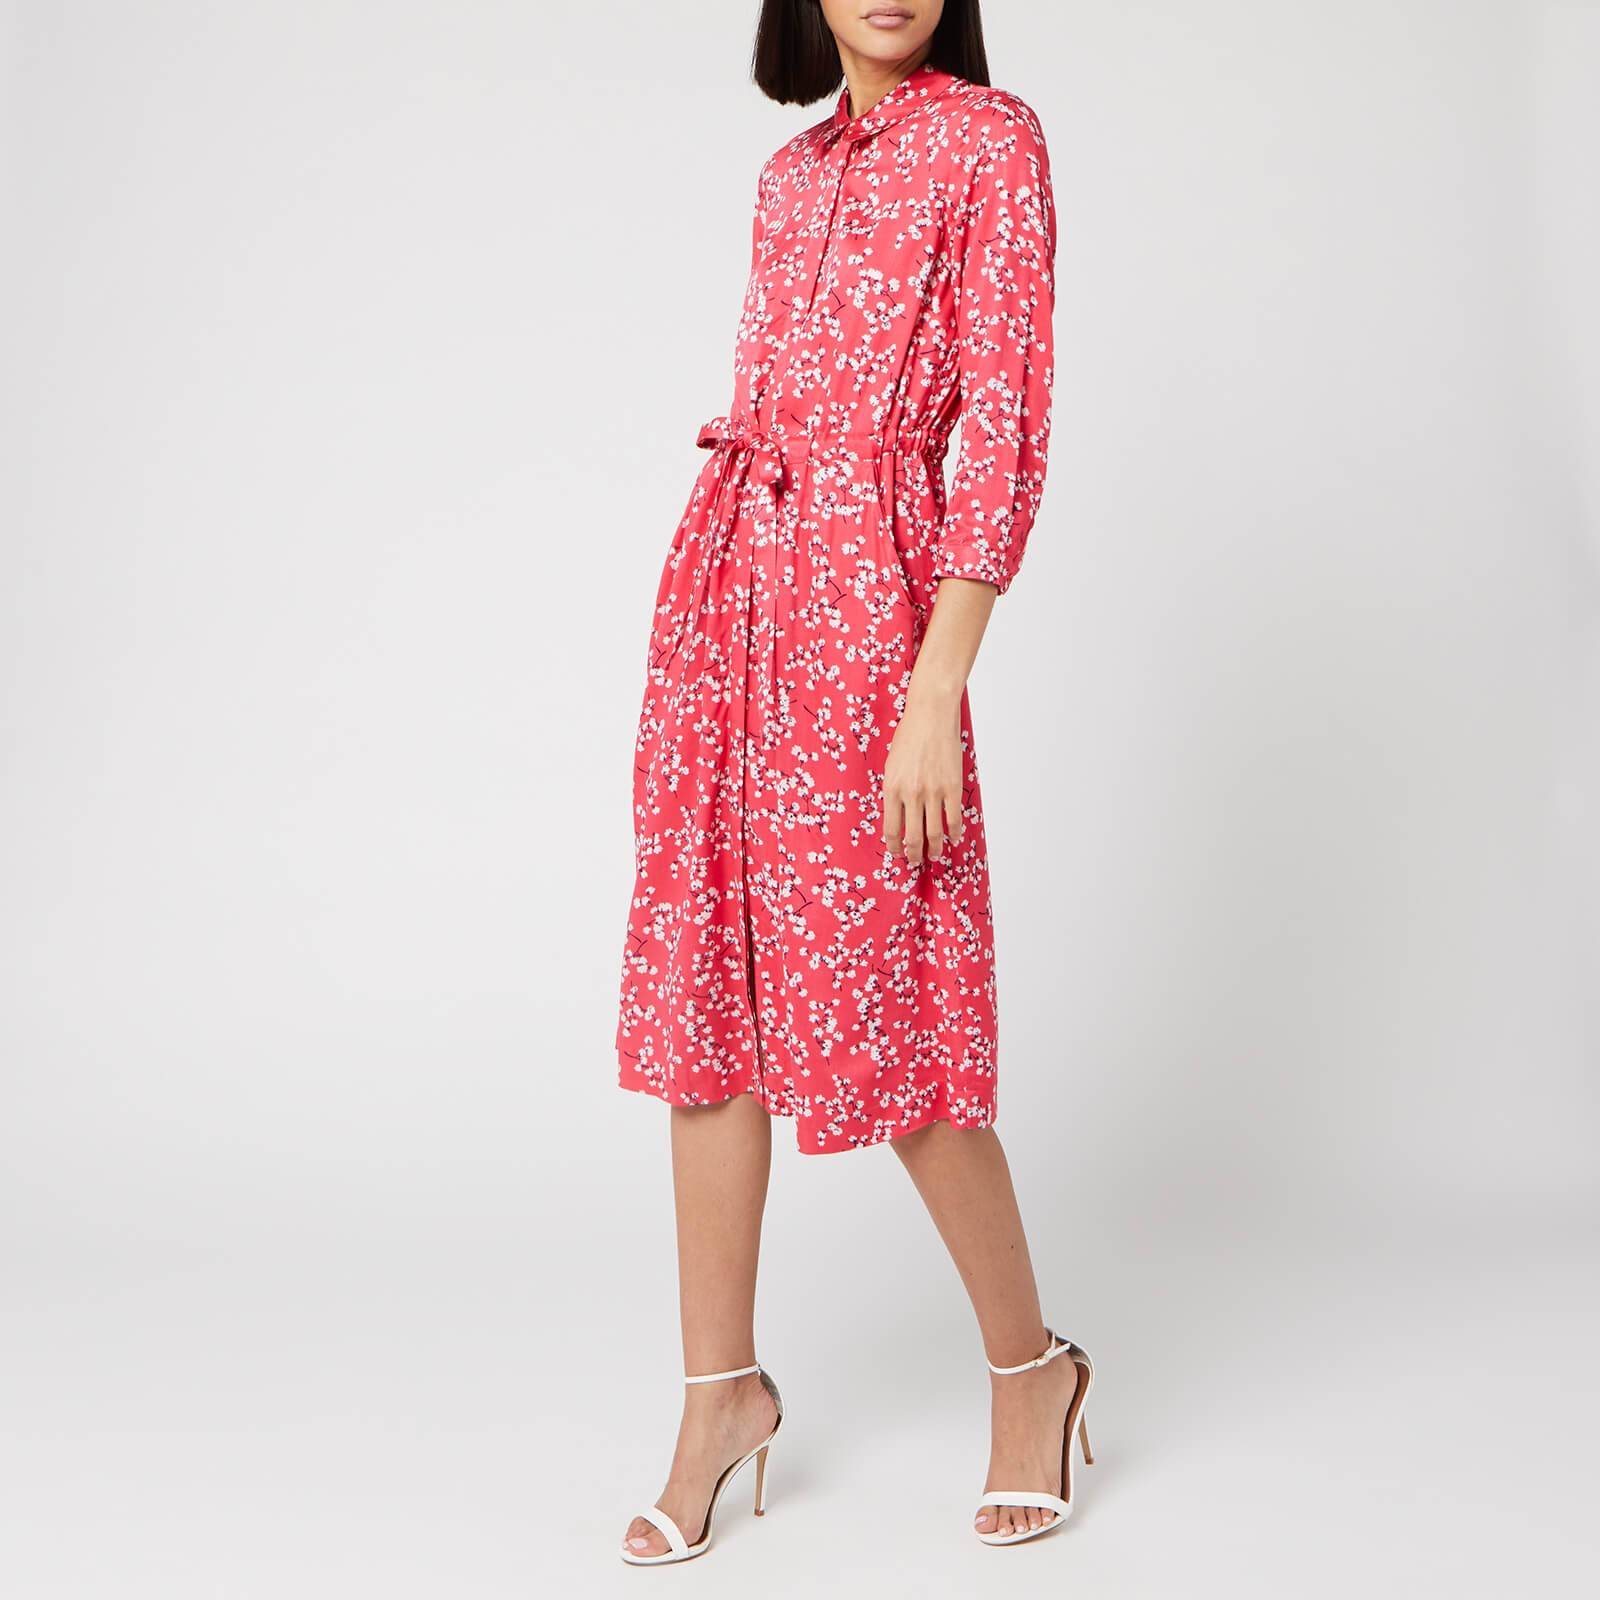 Joules Women's Winslet Long Sleeve Dress - Red Ditsy - UK 10